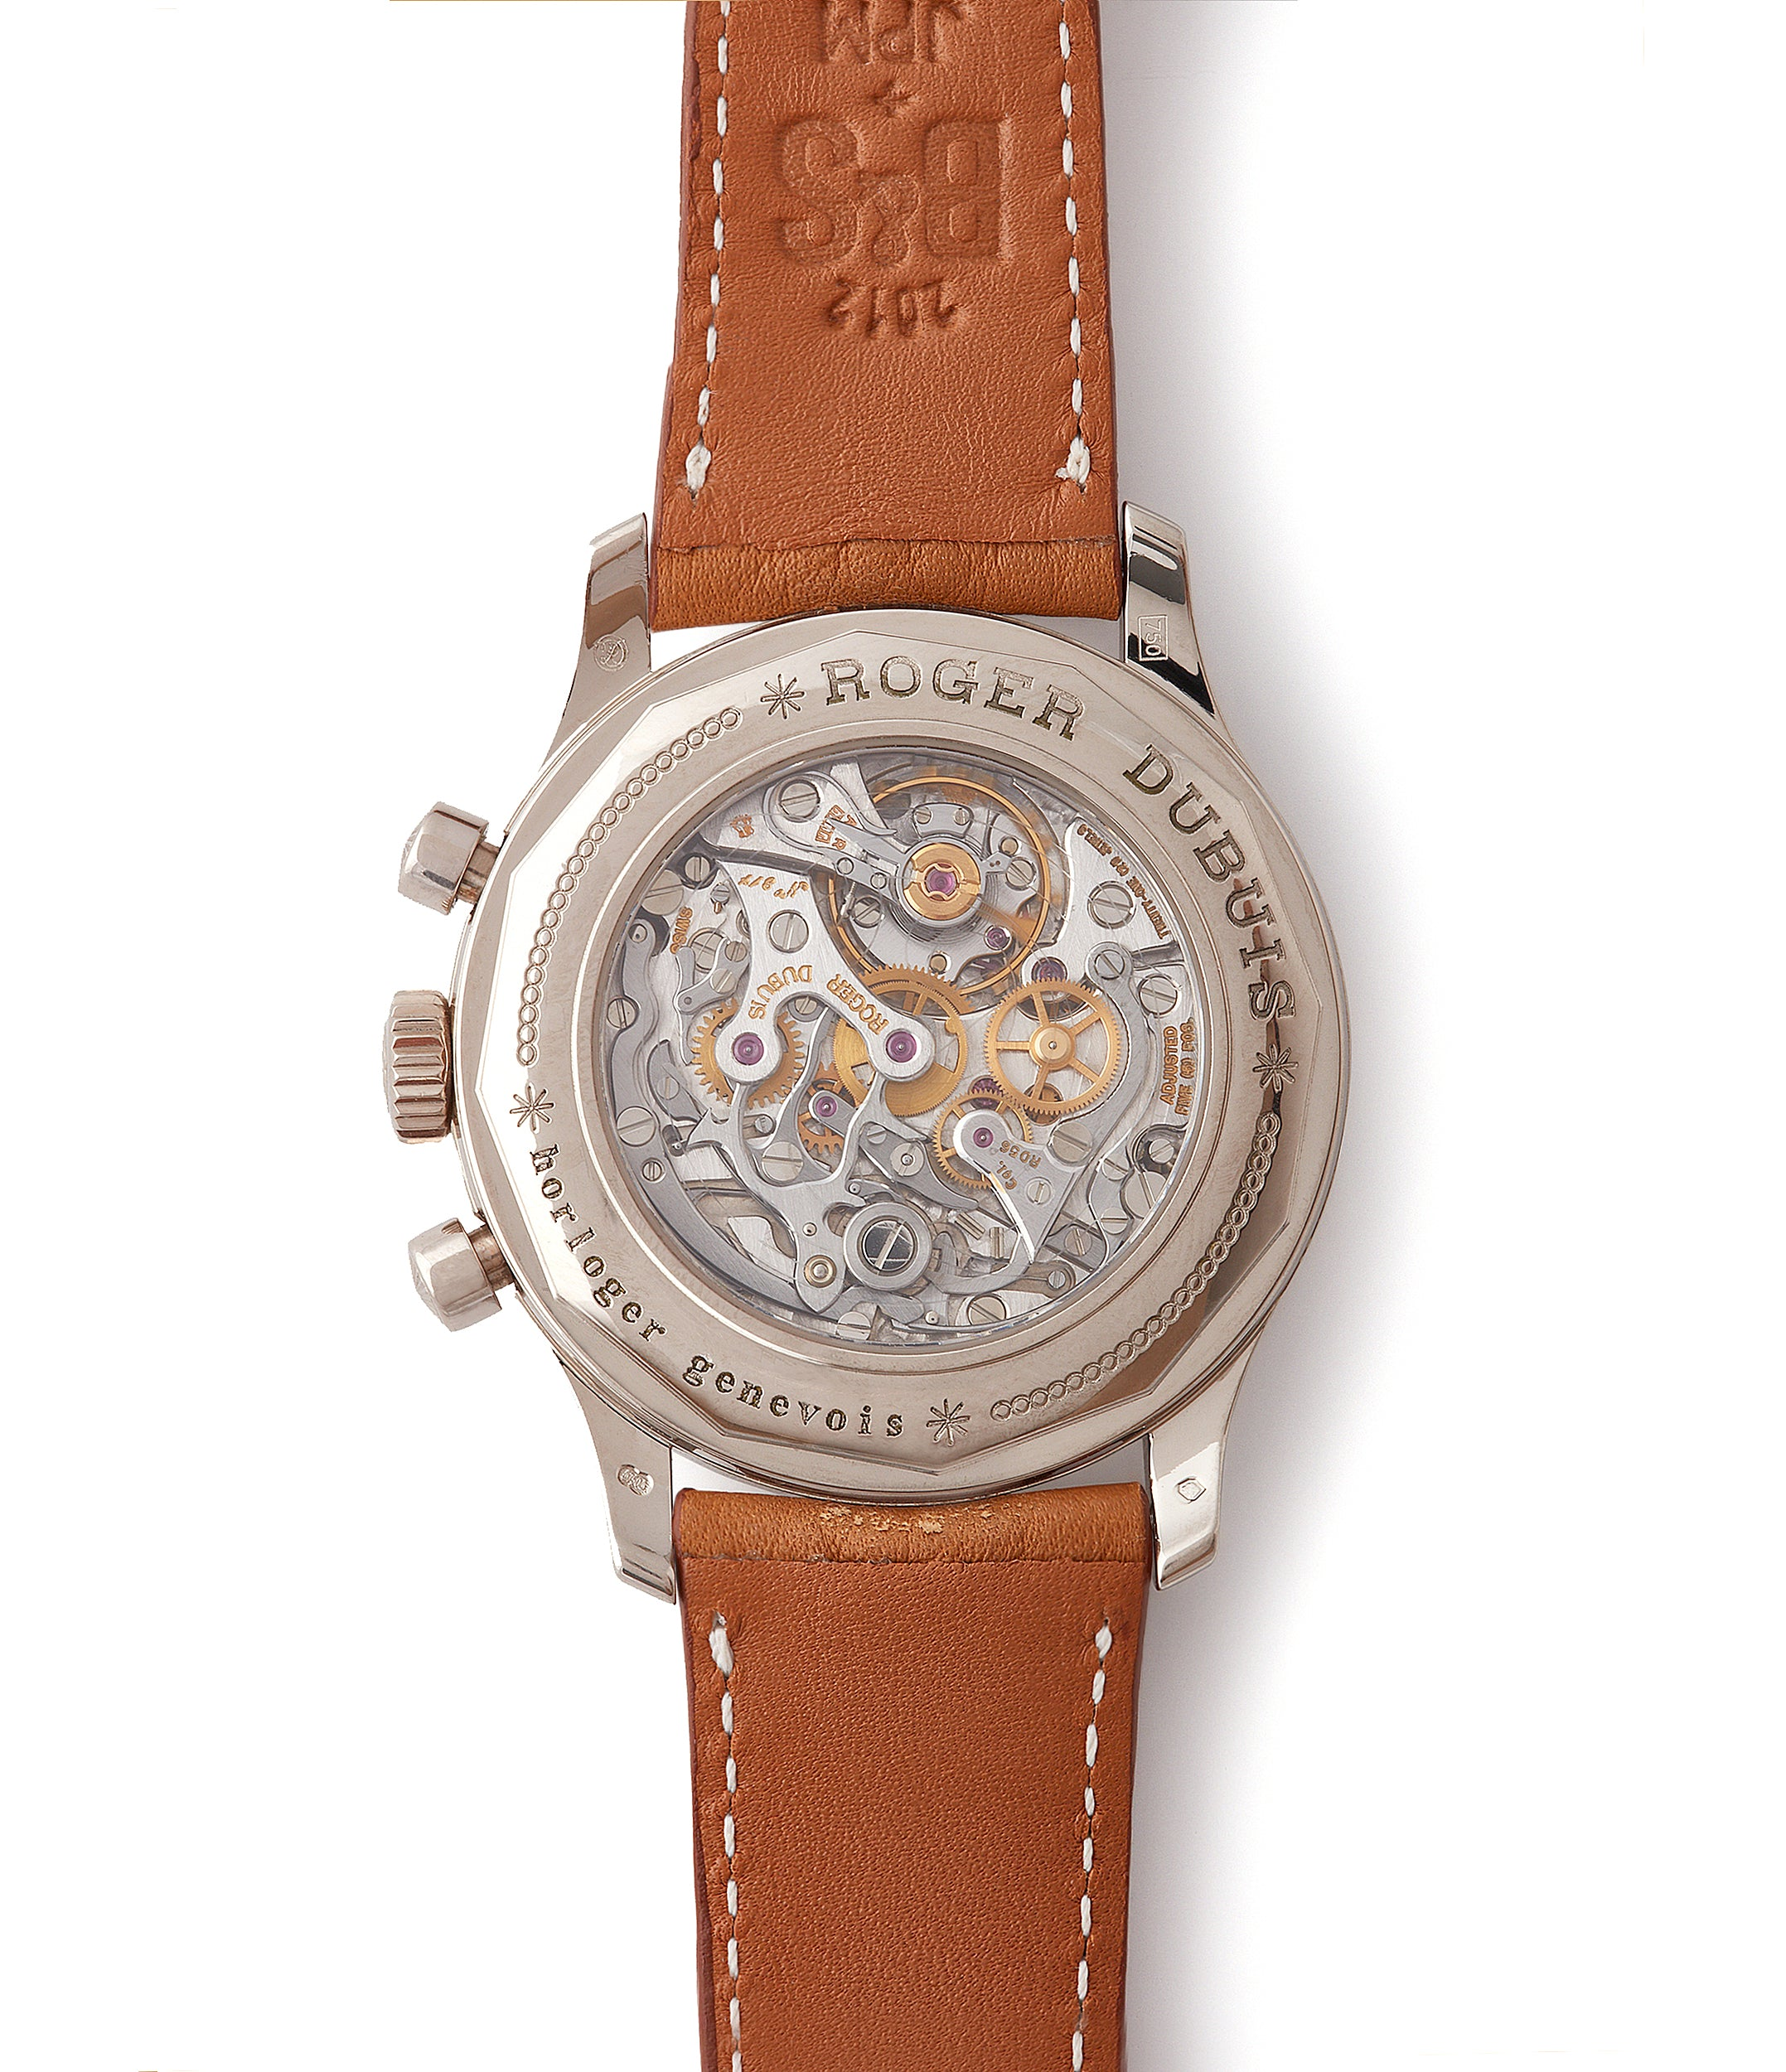 RD56 movement Roger Dubuis Hommage Chronograph white gold dress watch independent watchmaker